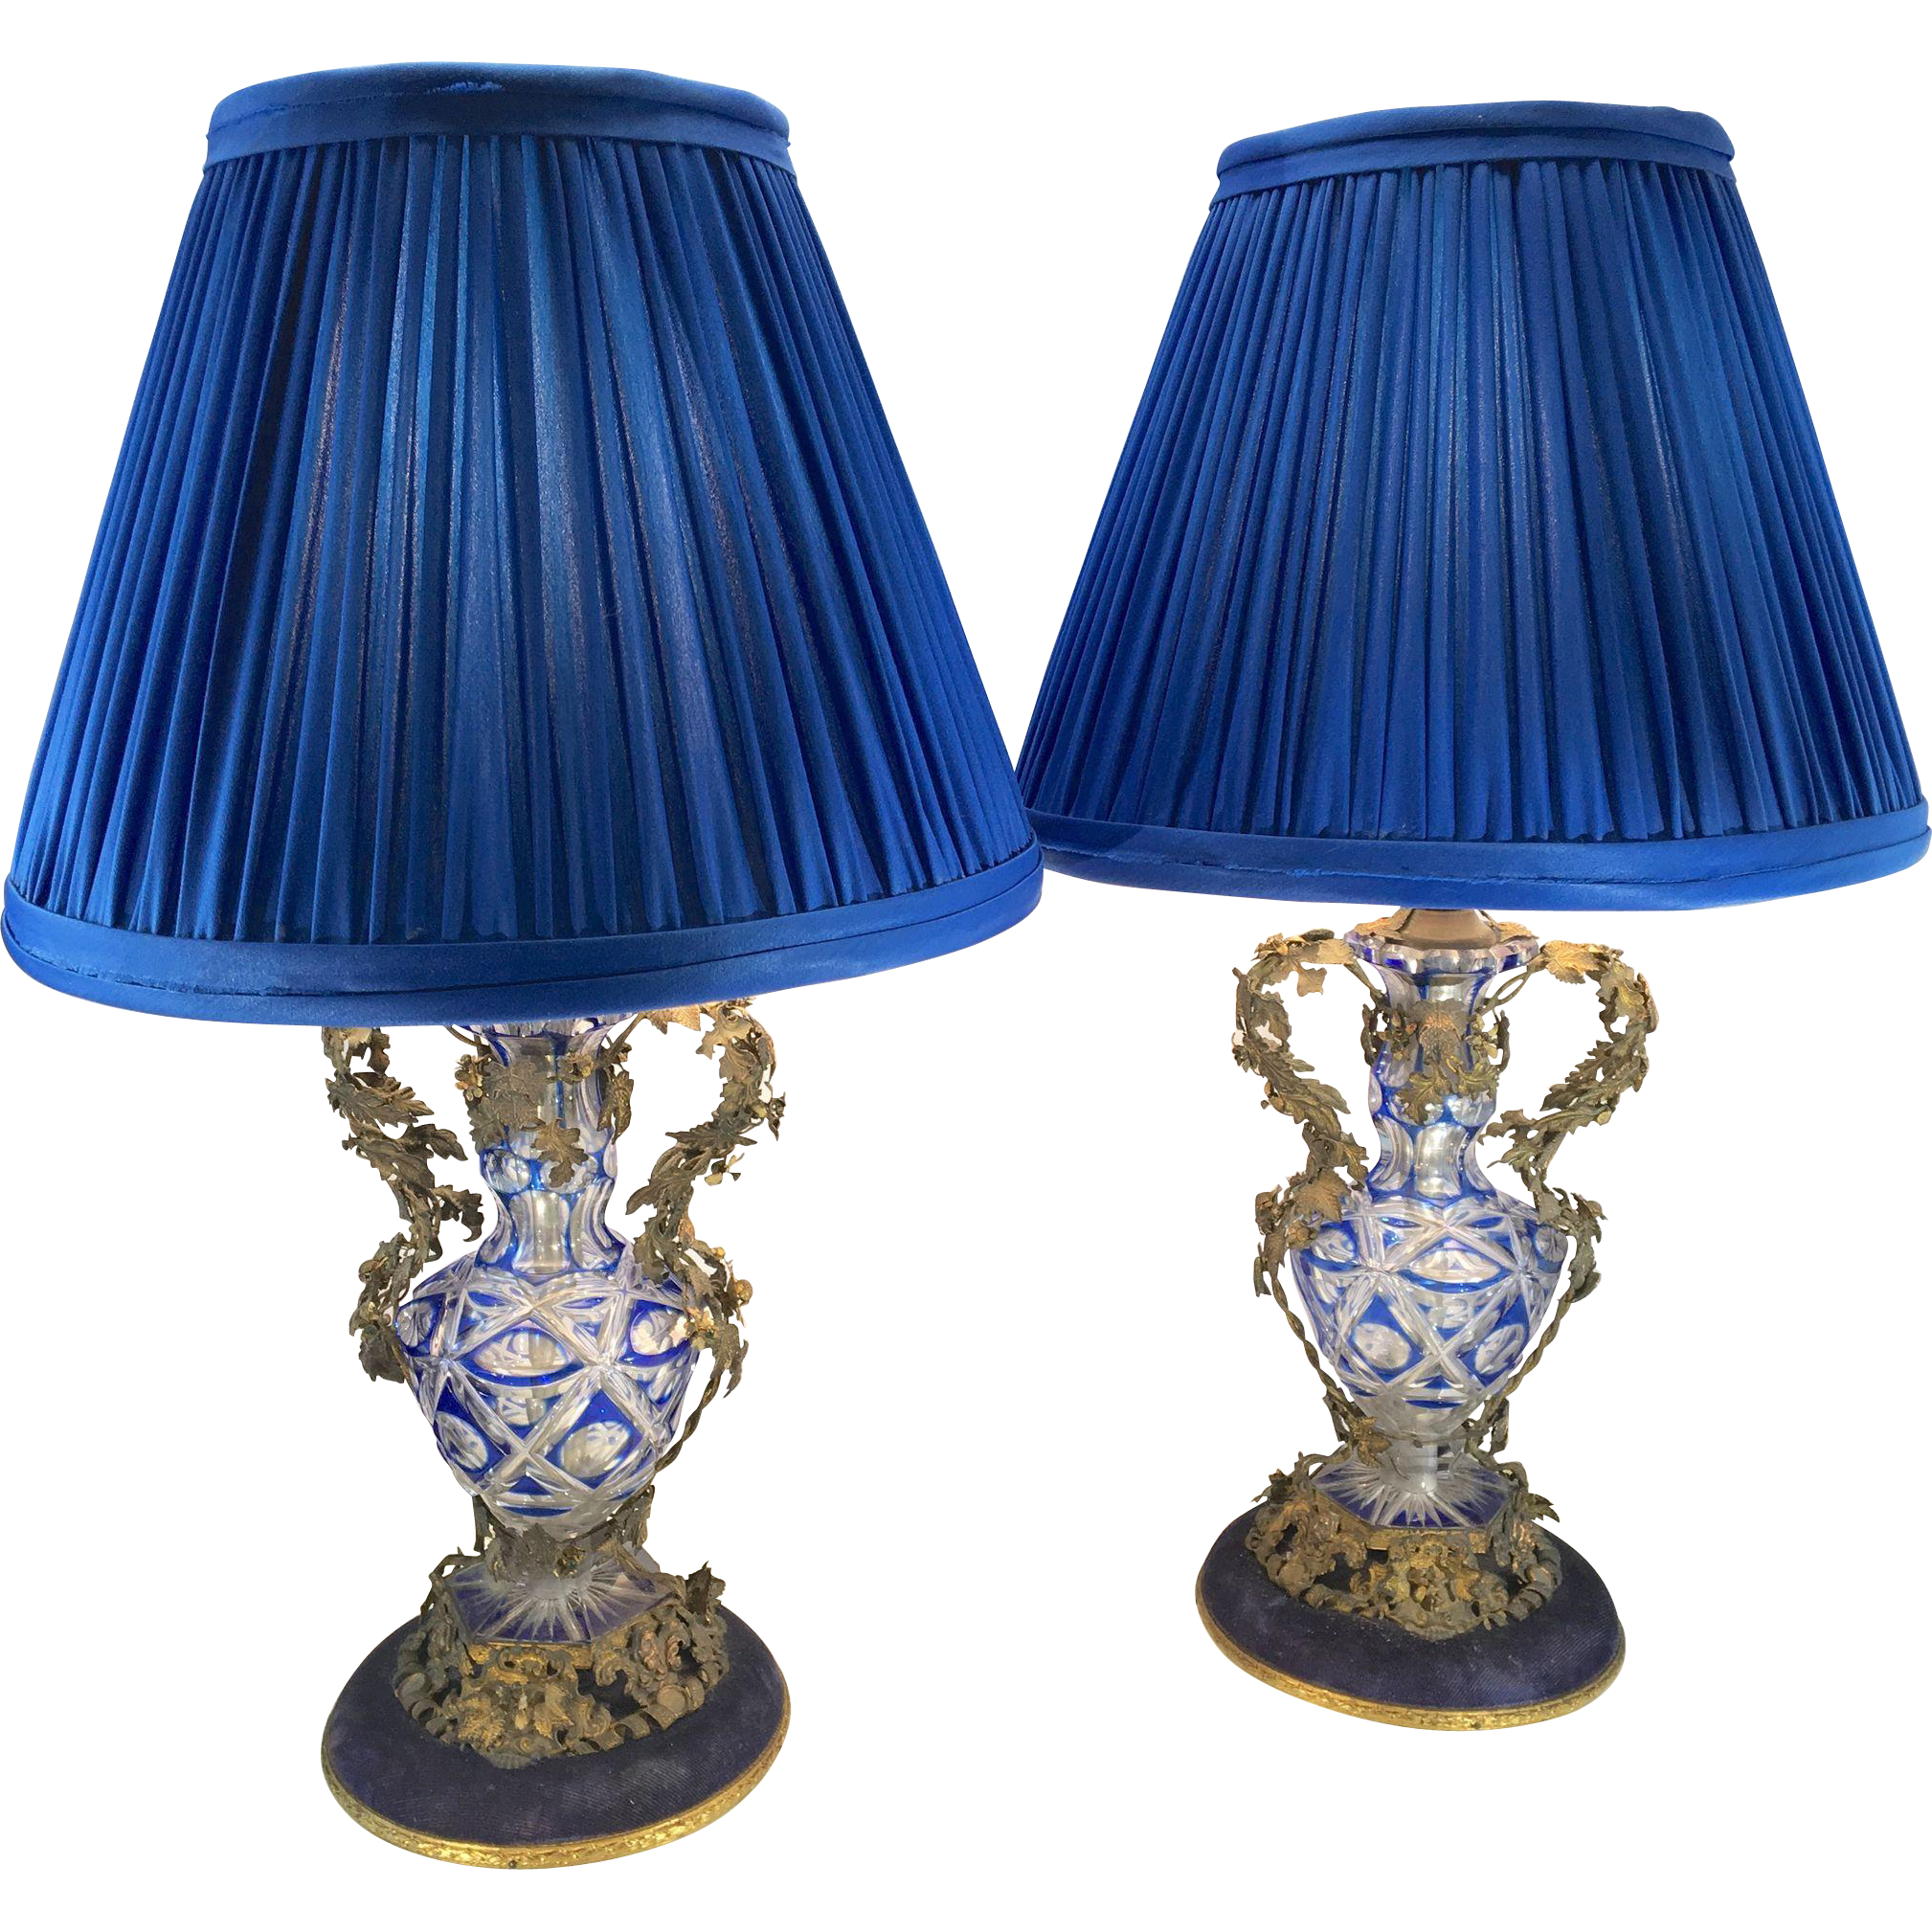 French Country Blue Lamps: Antique Pair Czech Bohemian Cut Glass Boudoir Lamps French